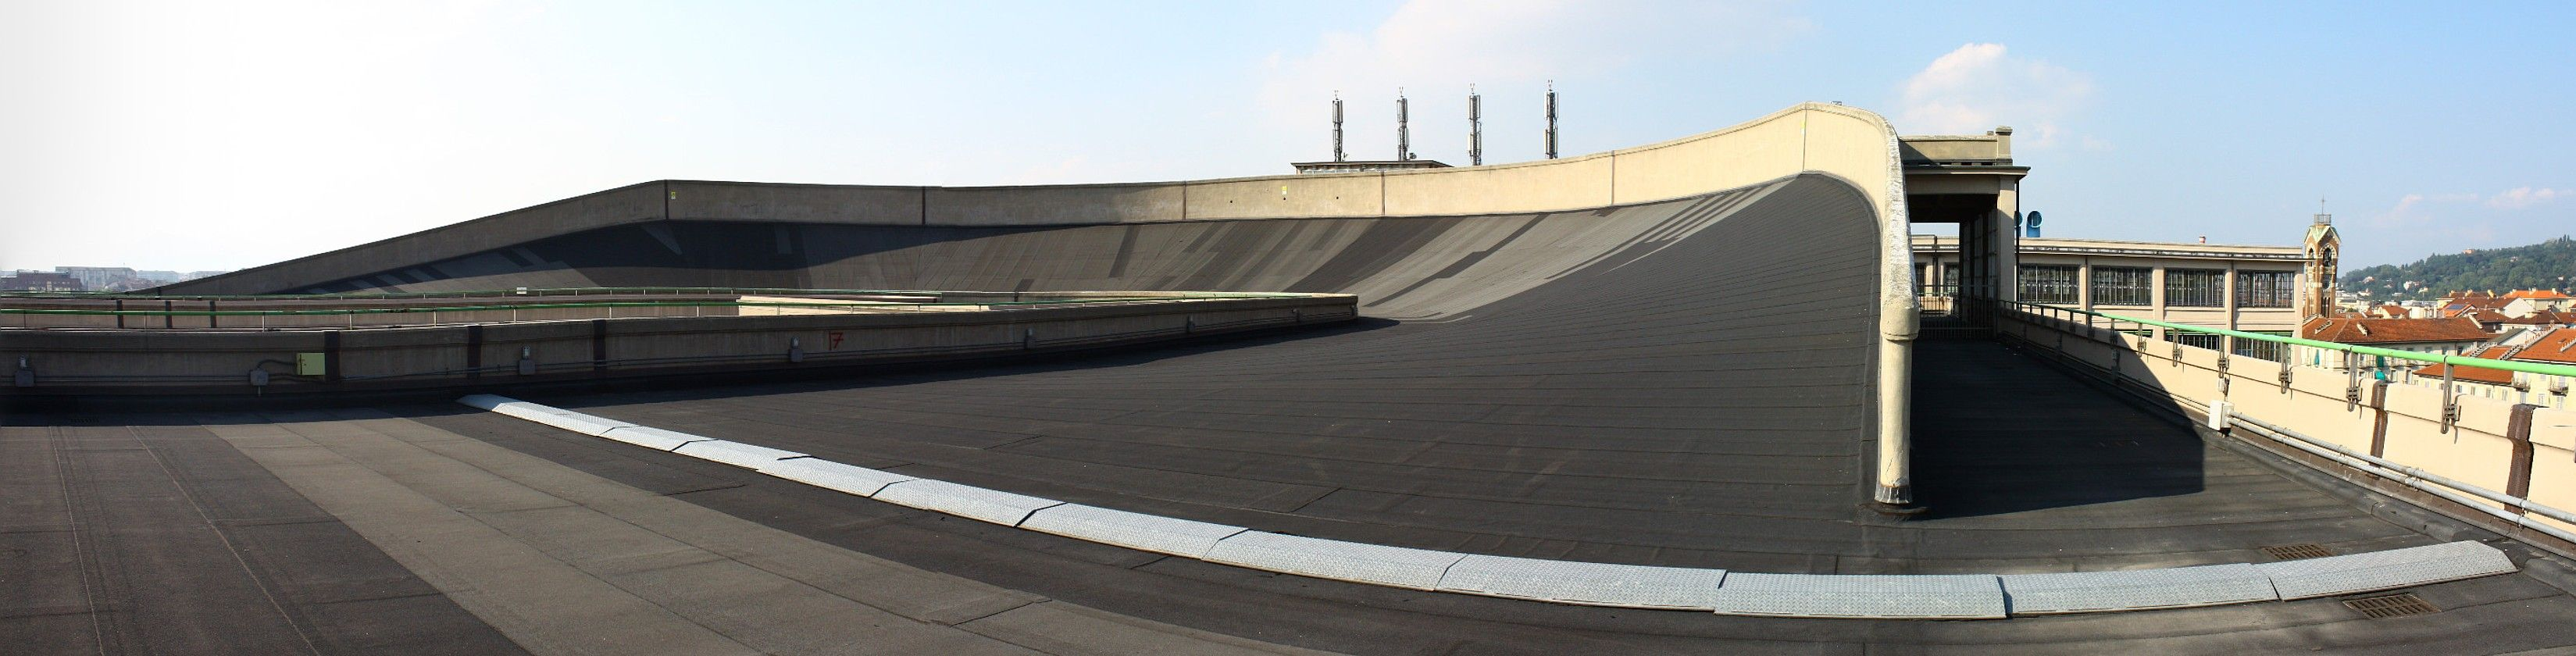 The Banking at the Fiat Lingotto Rooftop Racetrack